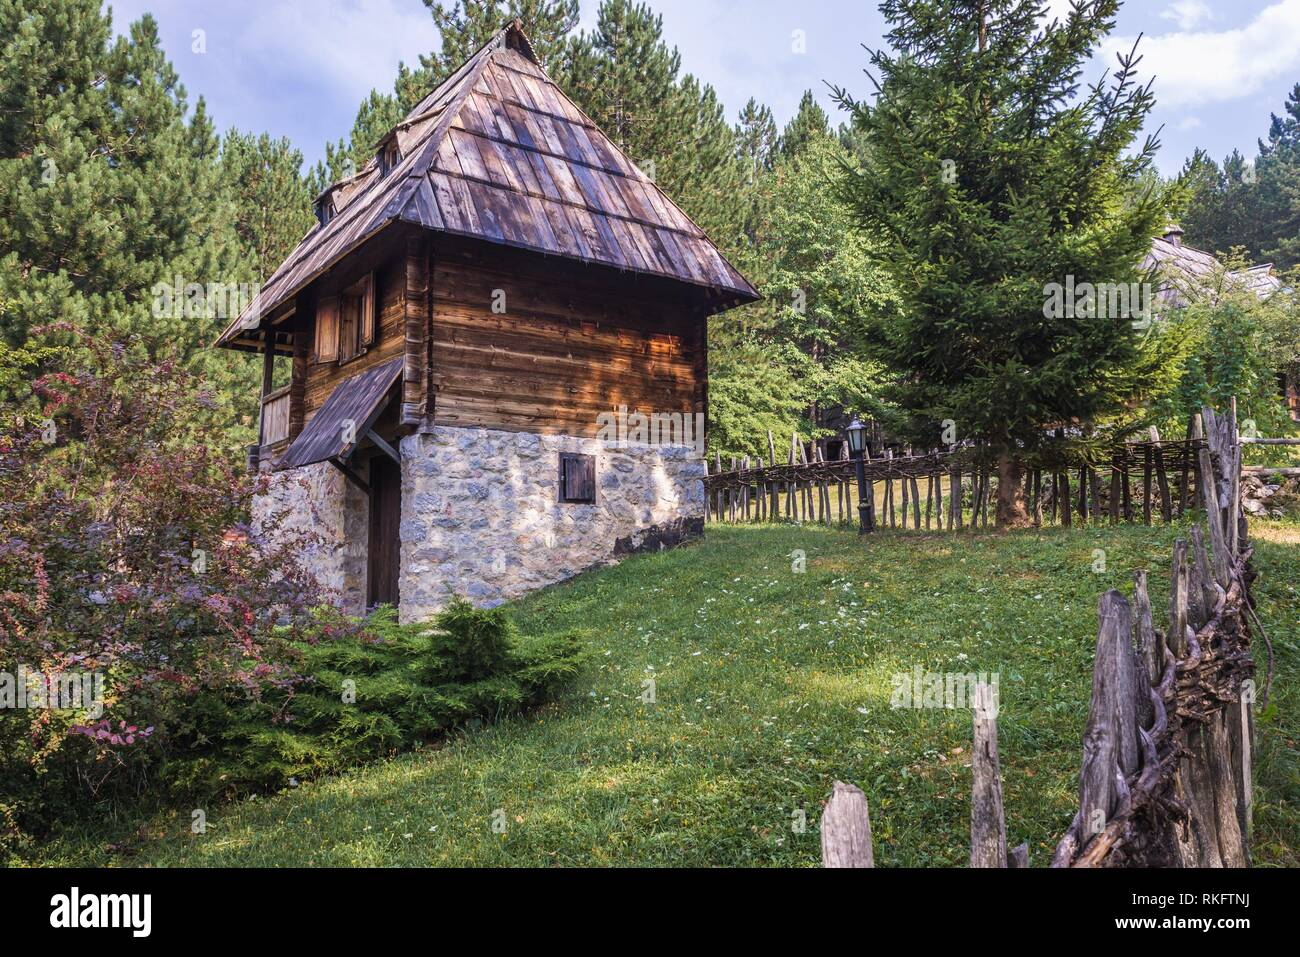 Lodging cabin for tourists in Ethnographic heritage park called Old Village Museum in Sirogojno village, Zlatibor region in western part of Serbia. - Stock Image